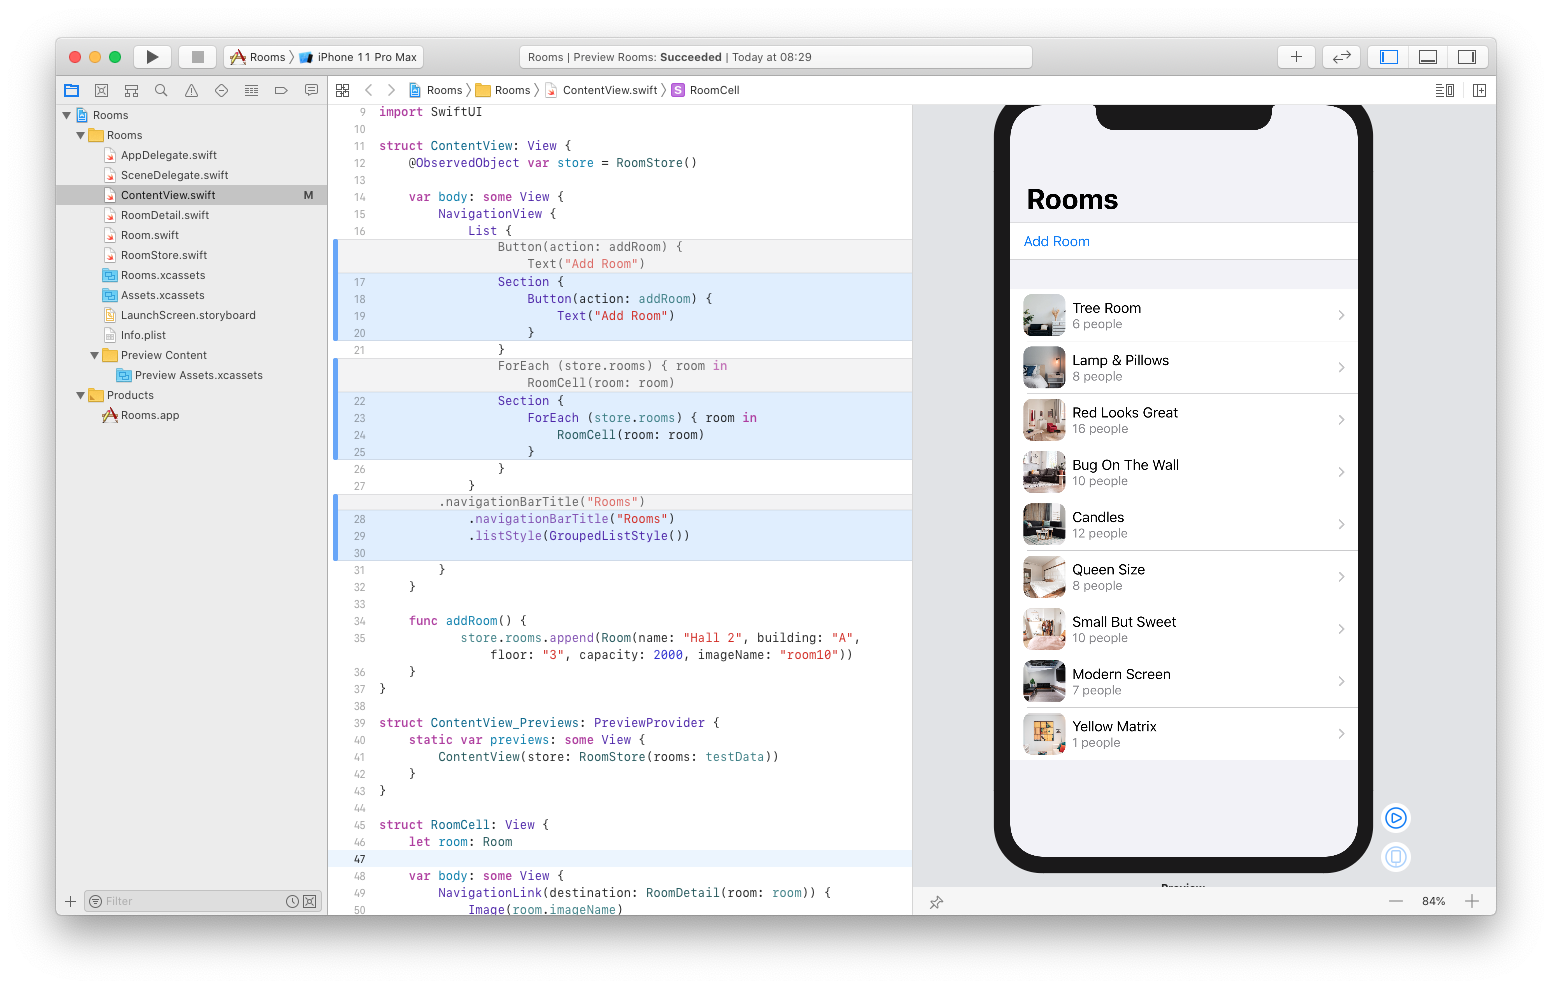 https://res.cloudinary.com/zavrelj/image/upload/v1578455408/codewithjan/swiftui-by-examples/swiftui-by-examples-55.png